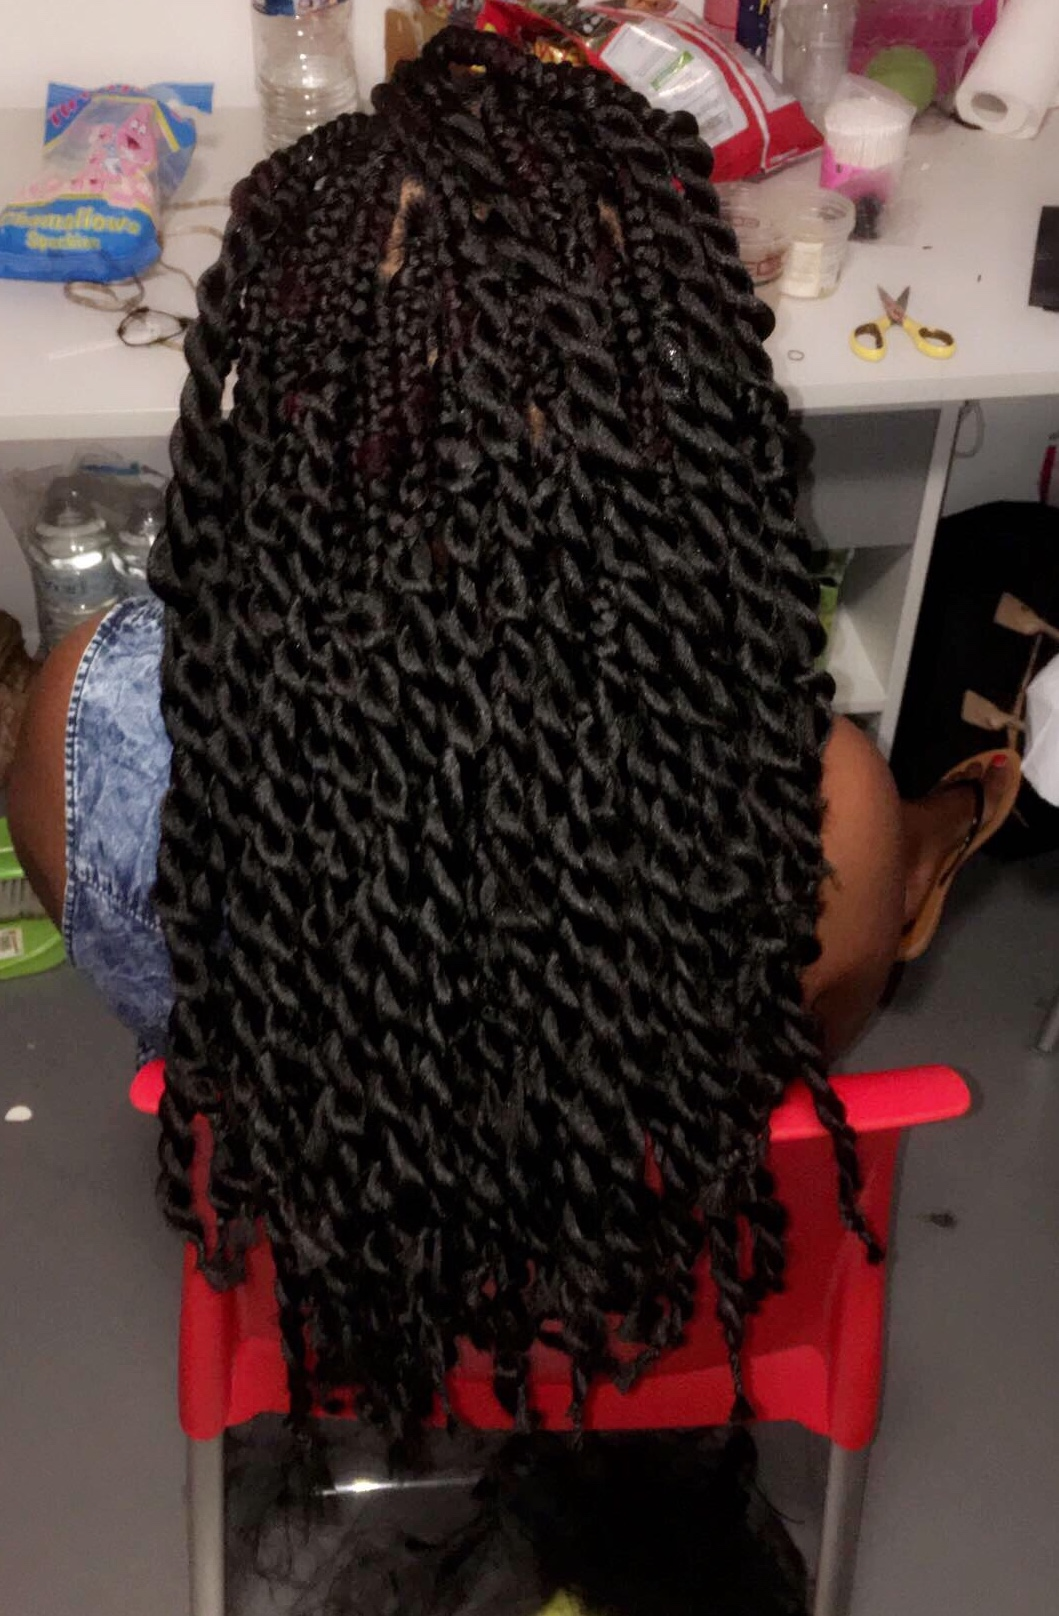 salon de coiffure afro tresse tresses box braids crochet braids vanilles tissages paris 75 77 78 91 92 93 94 95 WZDLKMPF